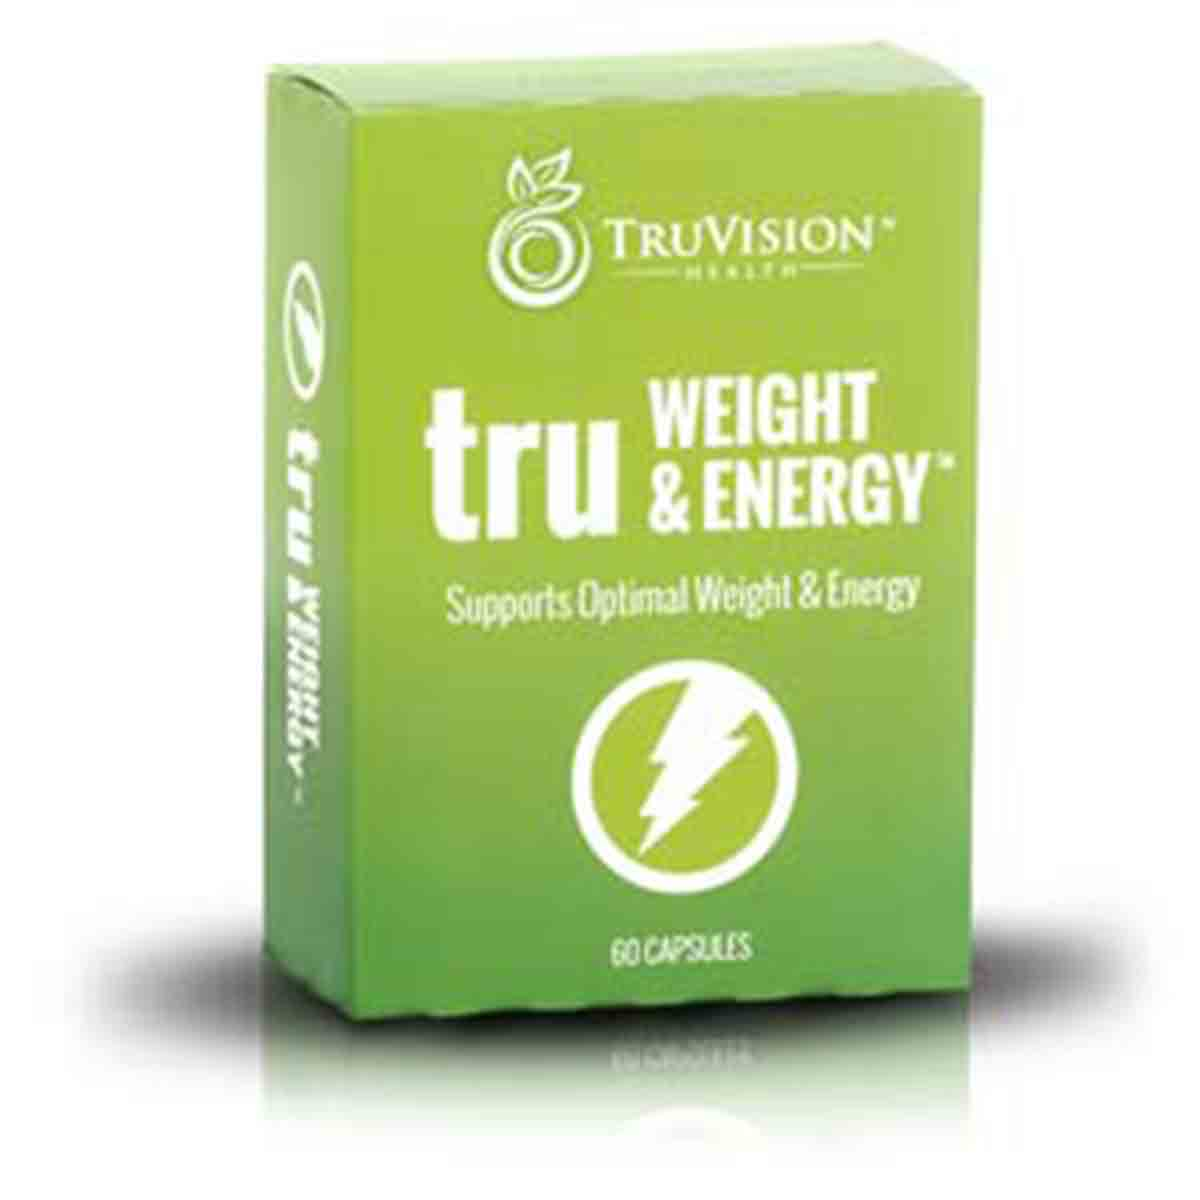 TruWeight & Energy